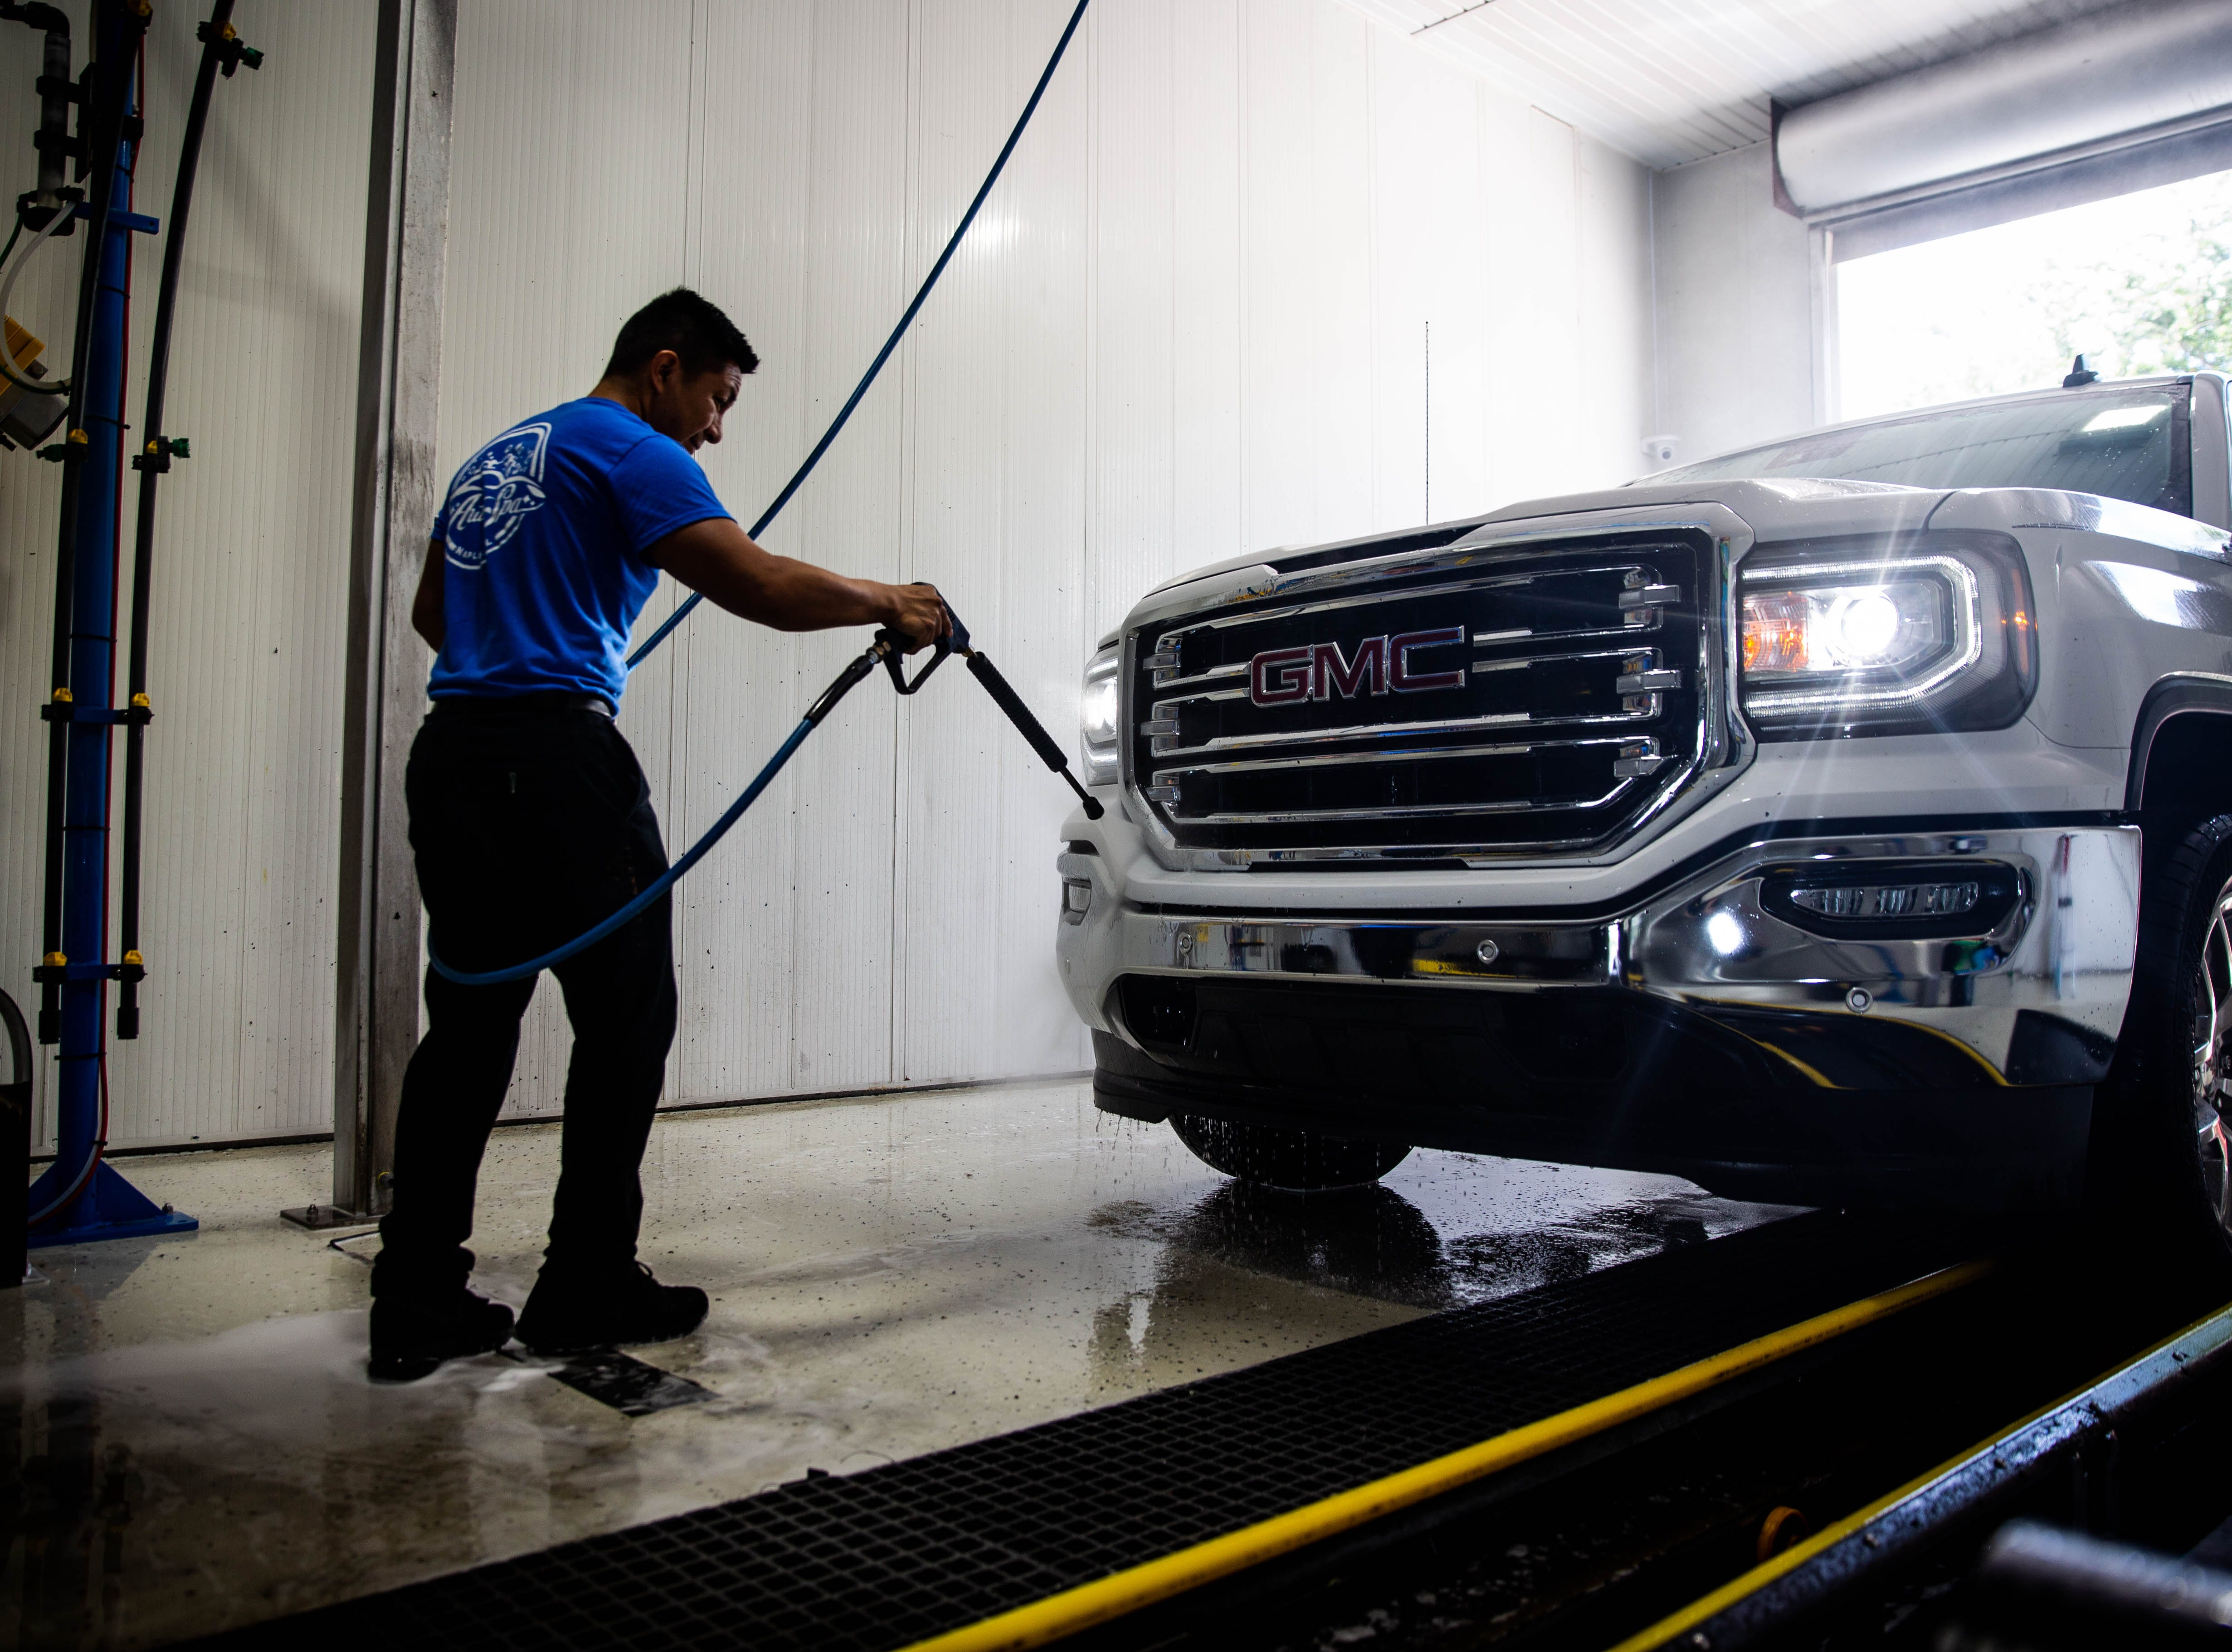 Jose Mendoza washes a truck at the Auto Spa car wash in Naples on Friday, May 10, 2019. The car wash has been exceptionally busy due to the presence of lovebugs in Southwest Florida.